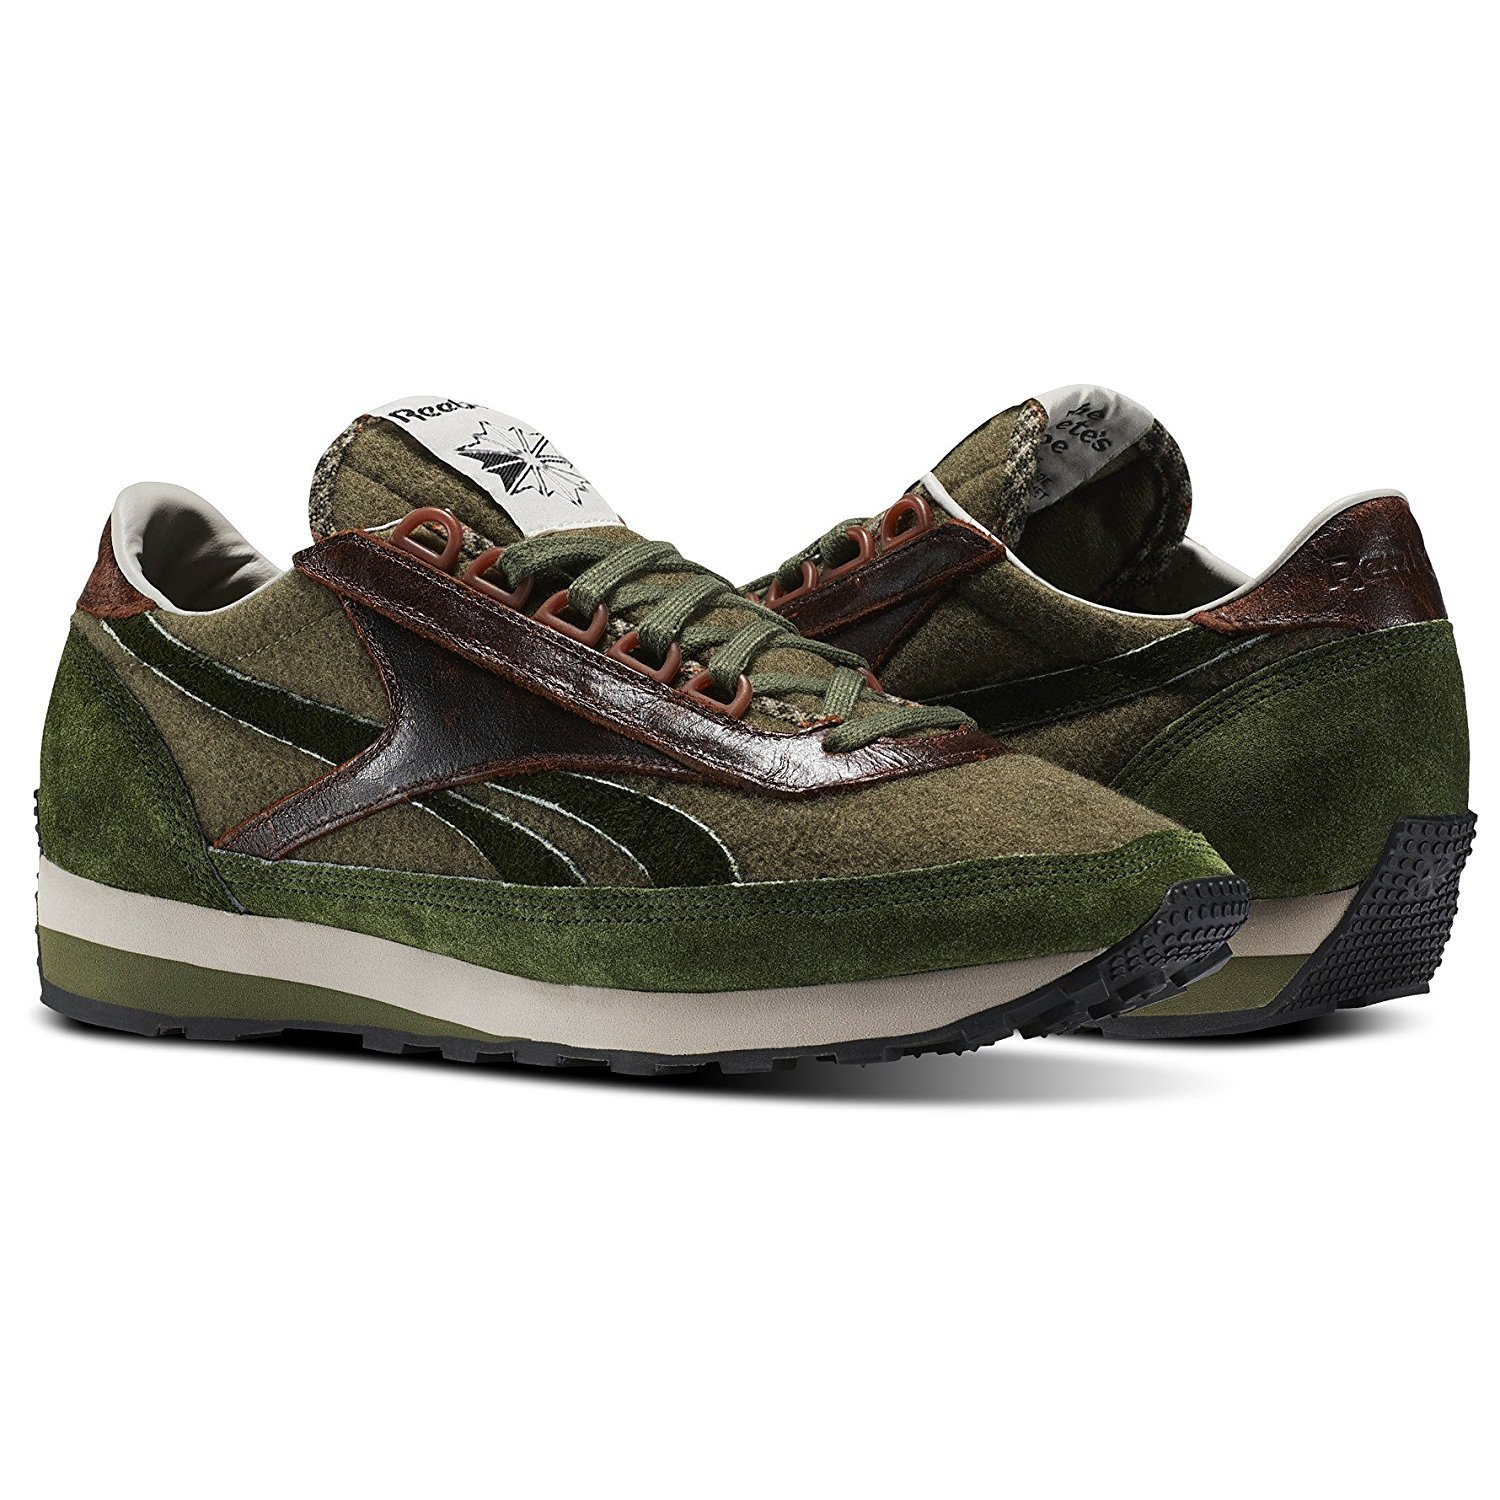 [リーボック REEBOK] AZTEC CLEAN BRITISH BS6314 29min5 [並行輸入品] B07DCKX8W1 23.5 cm